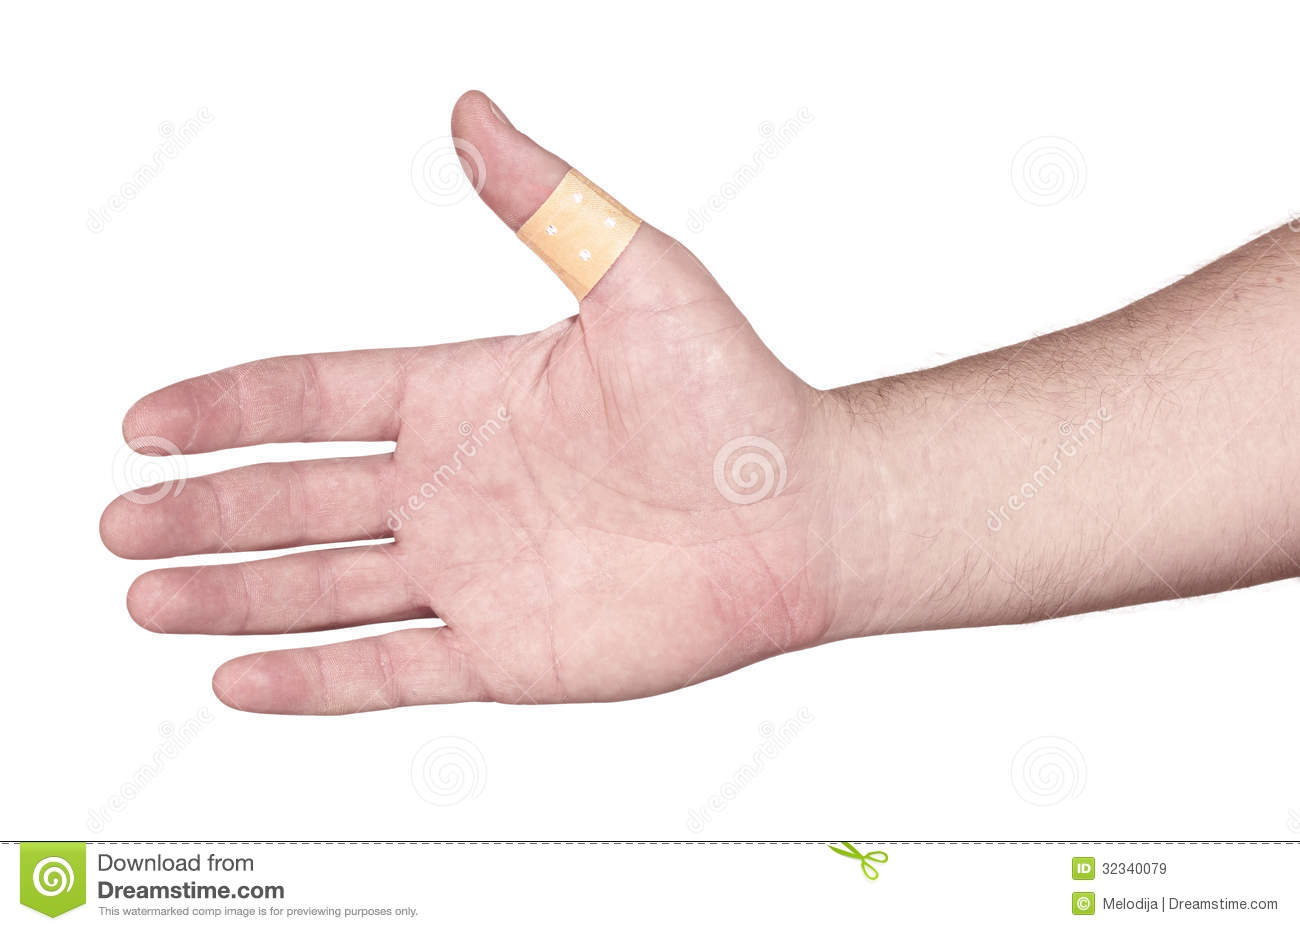 Band Aid On Finger Clipart Hands with band-aid adesive